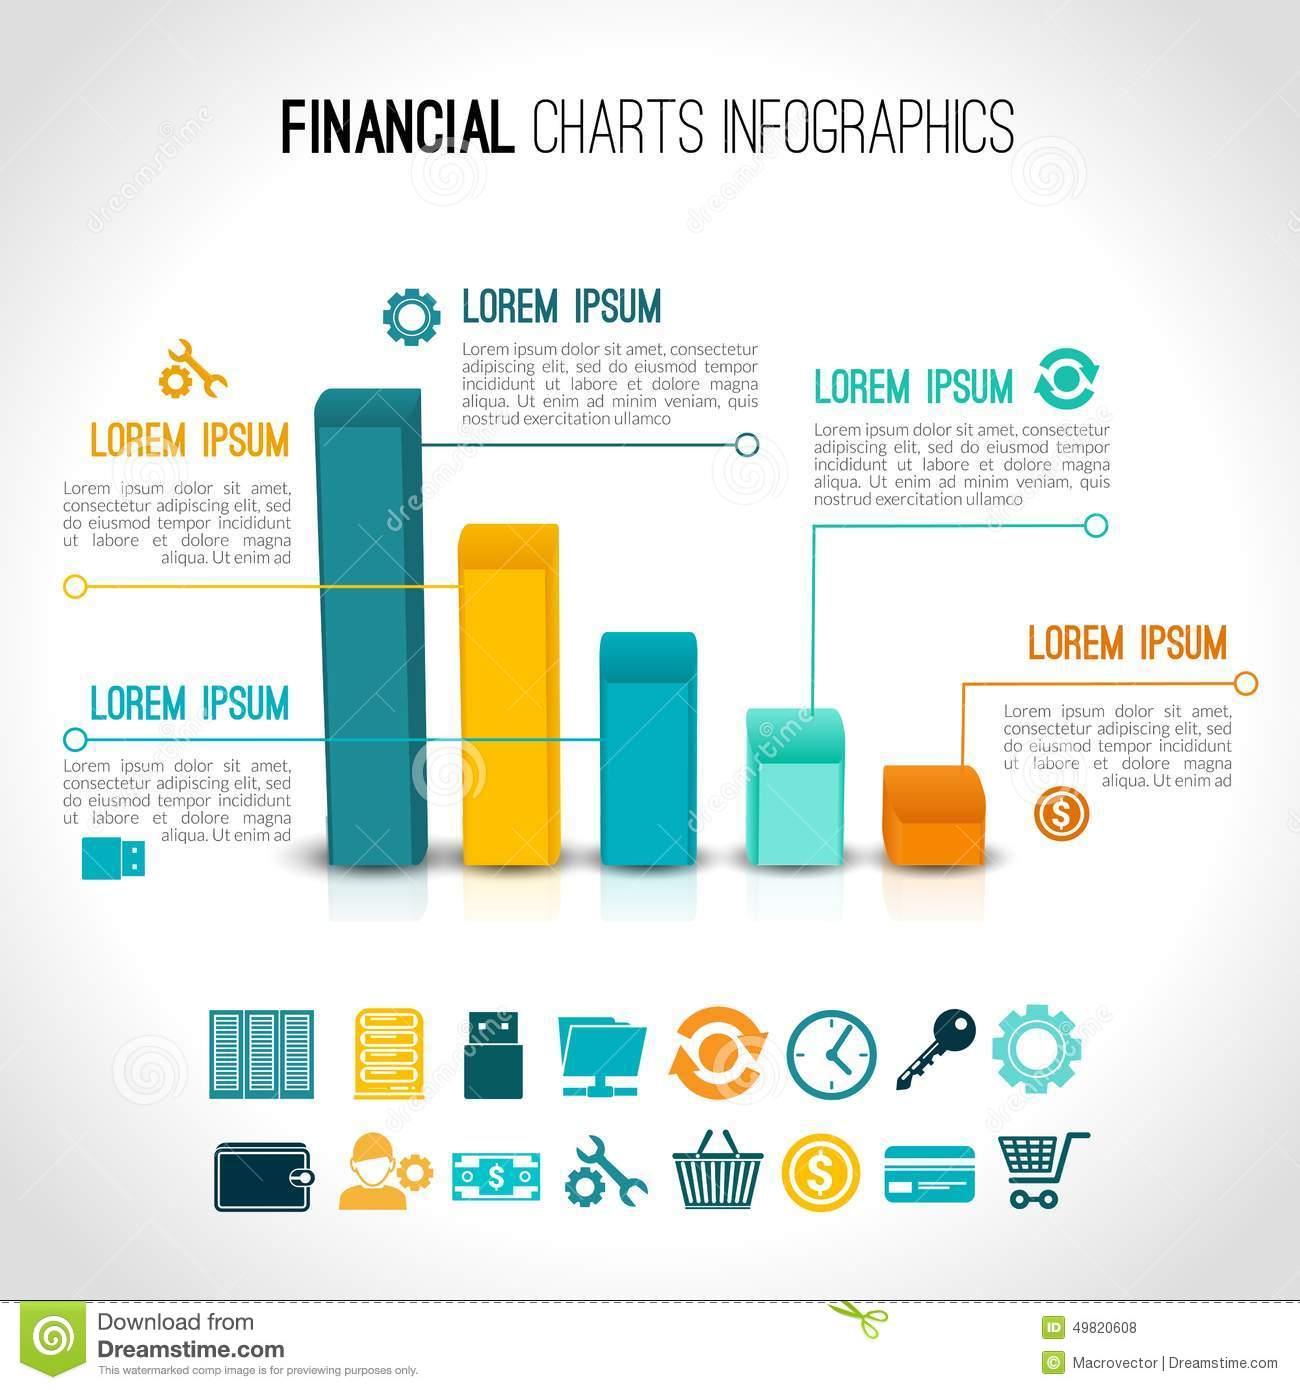 Finance Charts Infographic Stock Vector - Image: 49820608